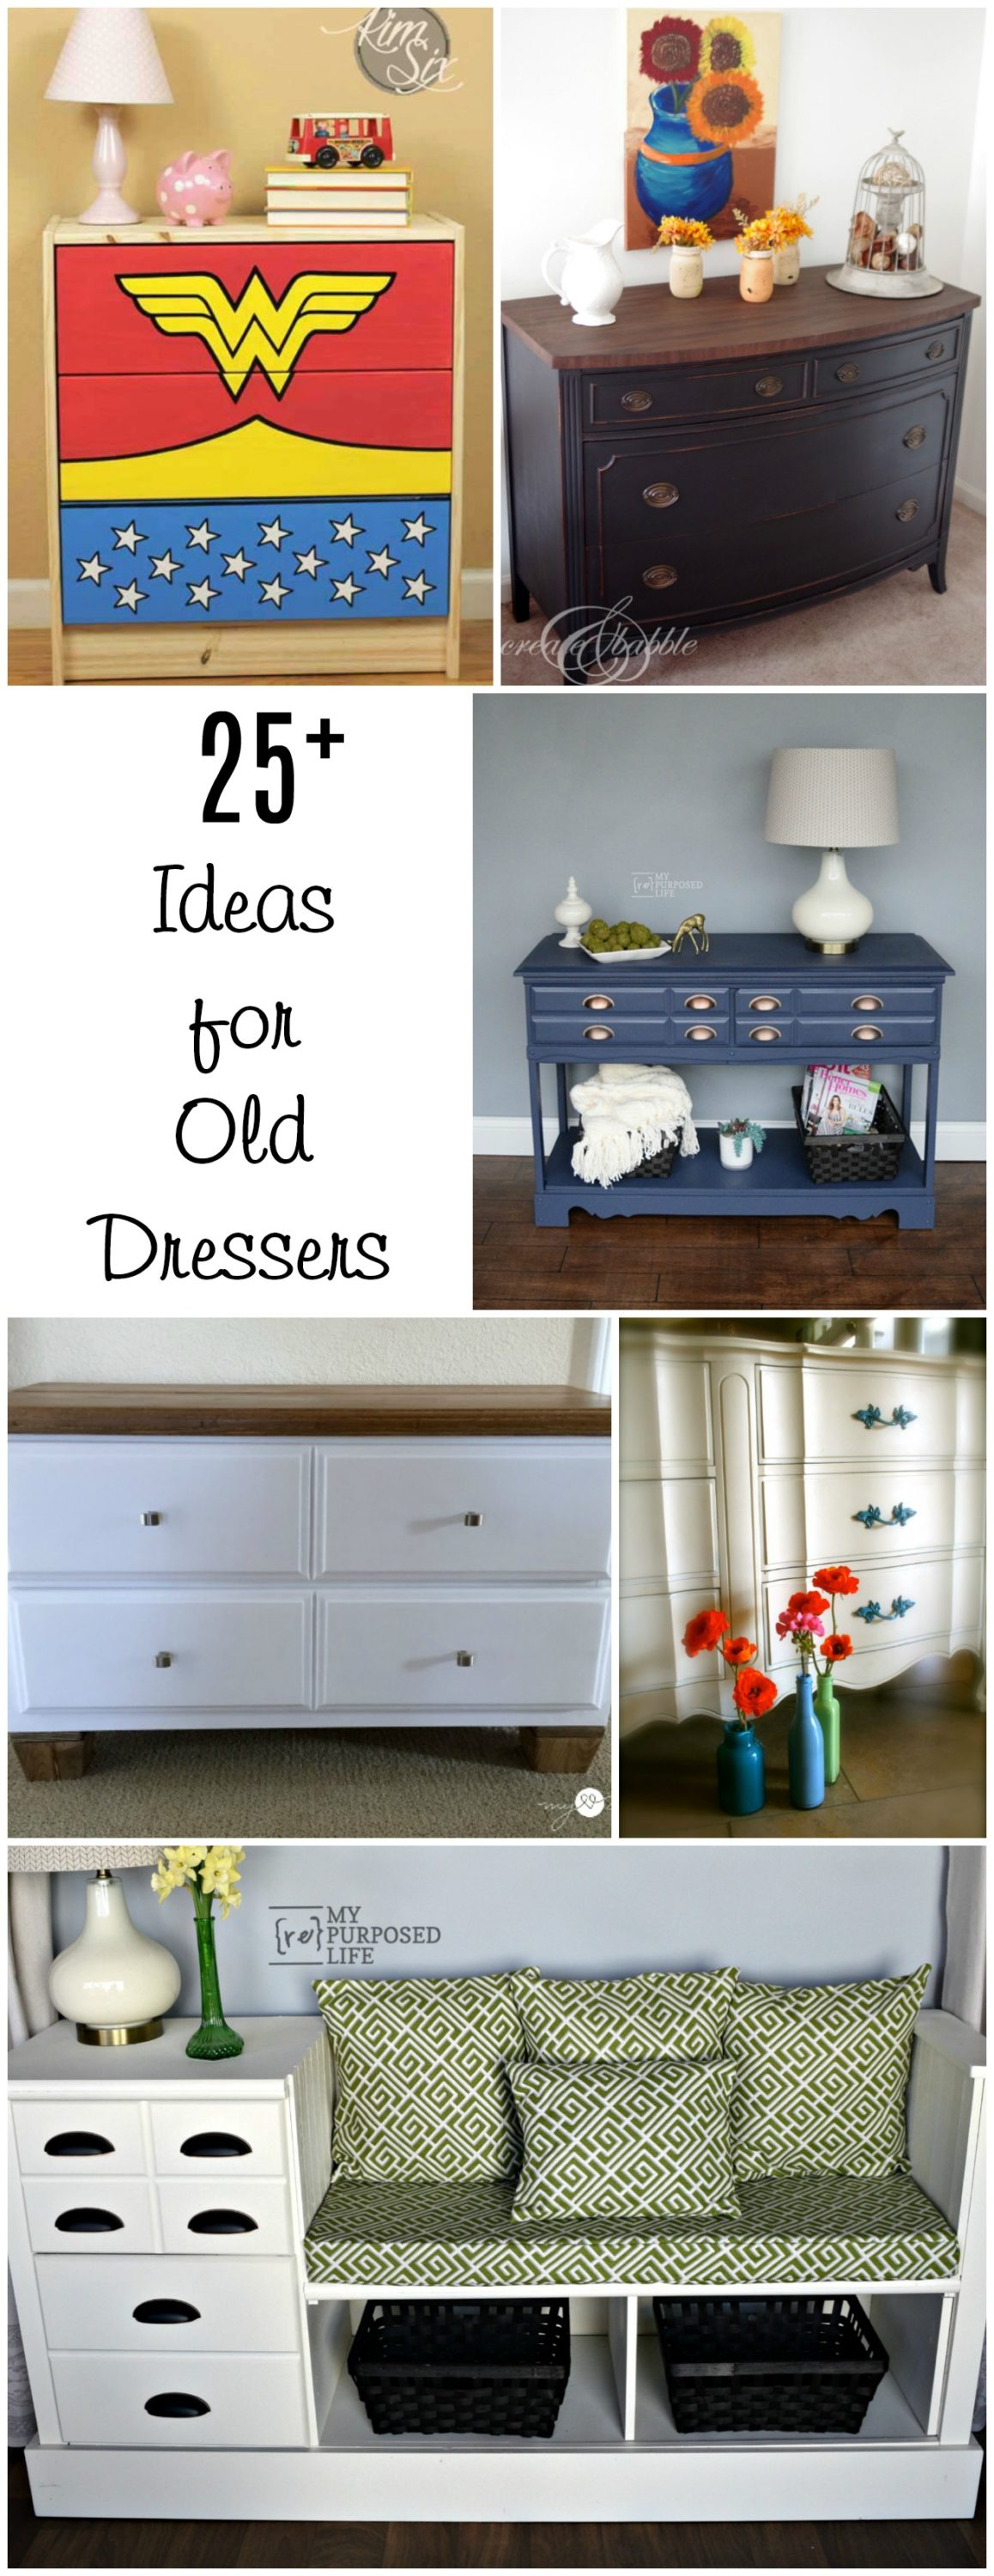 An old dresser is perfect for repurposed furniture projects and makeovers with paint & stencils. Ideas for that old dresser you have waiting in storage. #MyRepurposedLife #Repurposed #furniture #dresser #Project #ideas via @repurposedlife